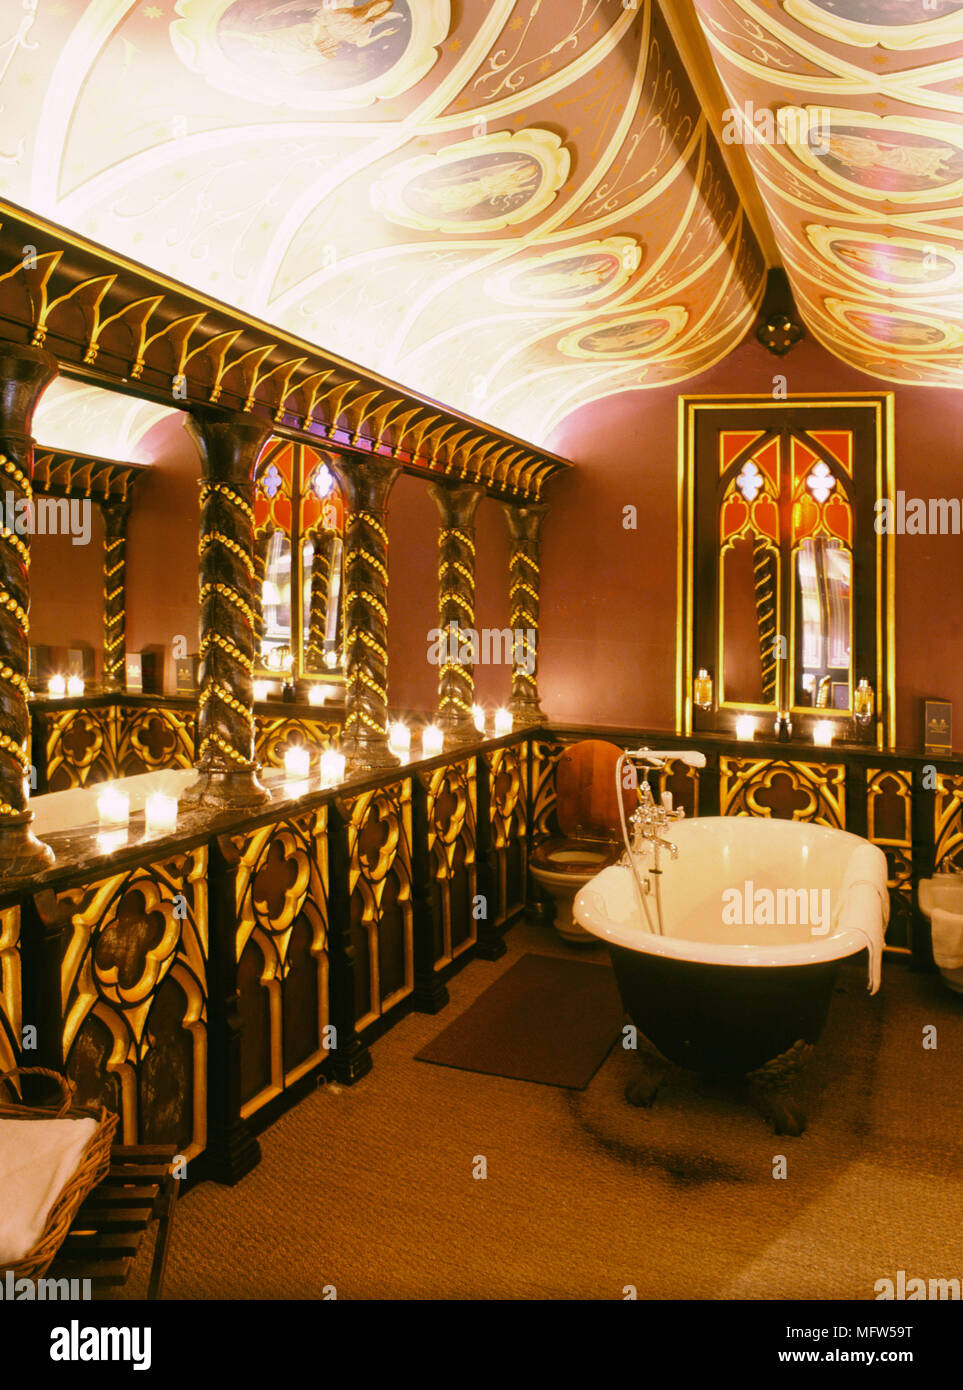 Traditional Red Bathroom Gold Decoration Freestanding Roll Top Bath Painted Ceiling Interiors Bathrooms Rich Grand Dramatic